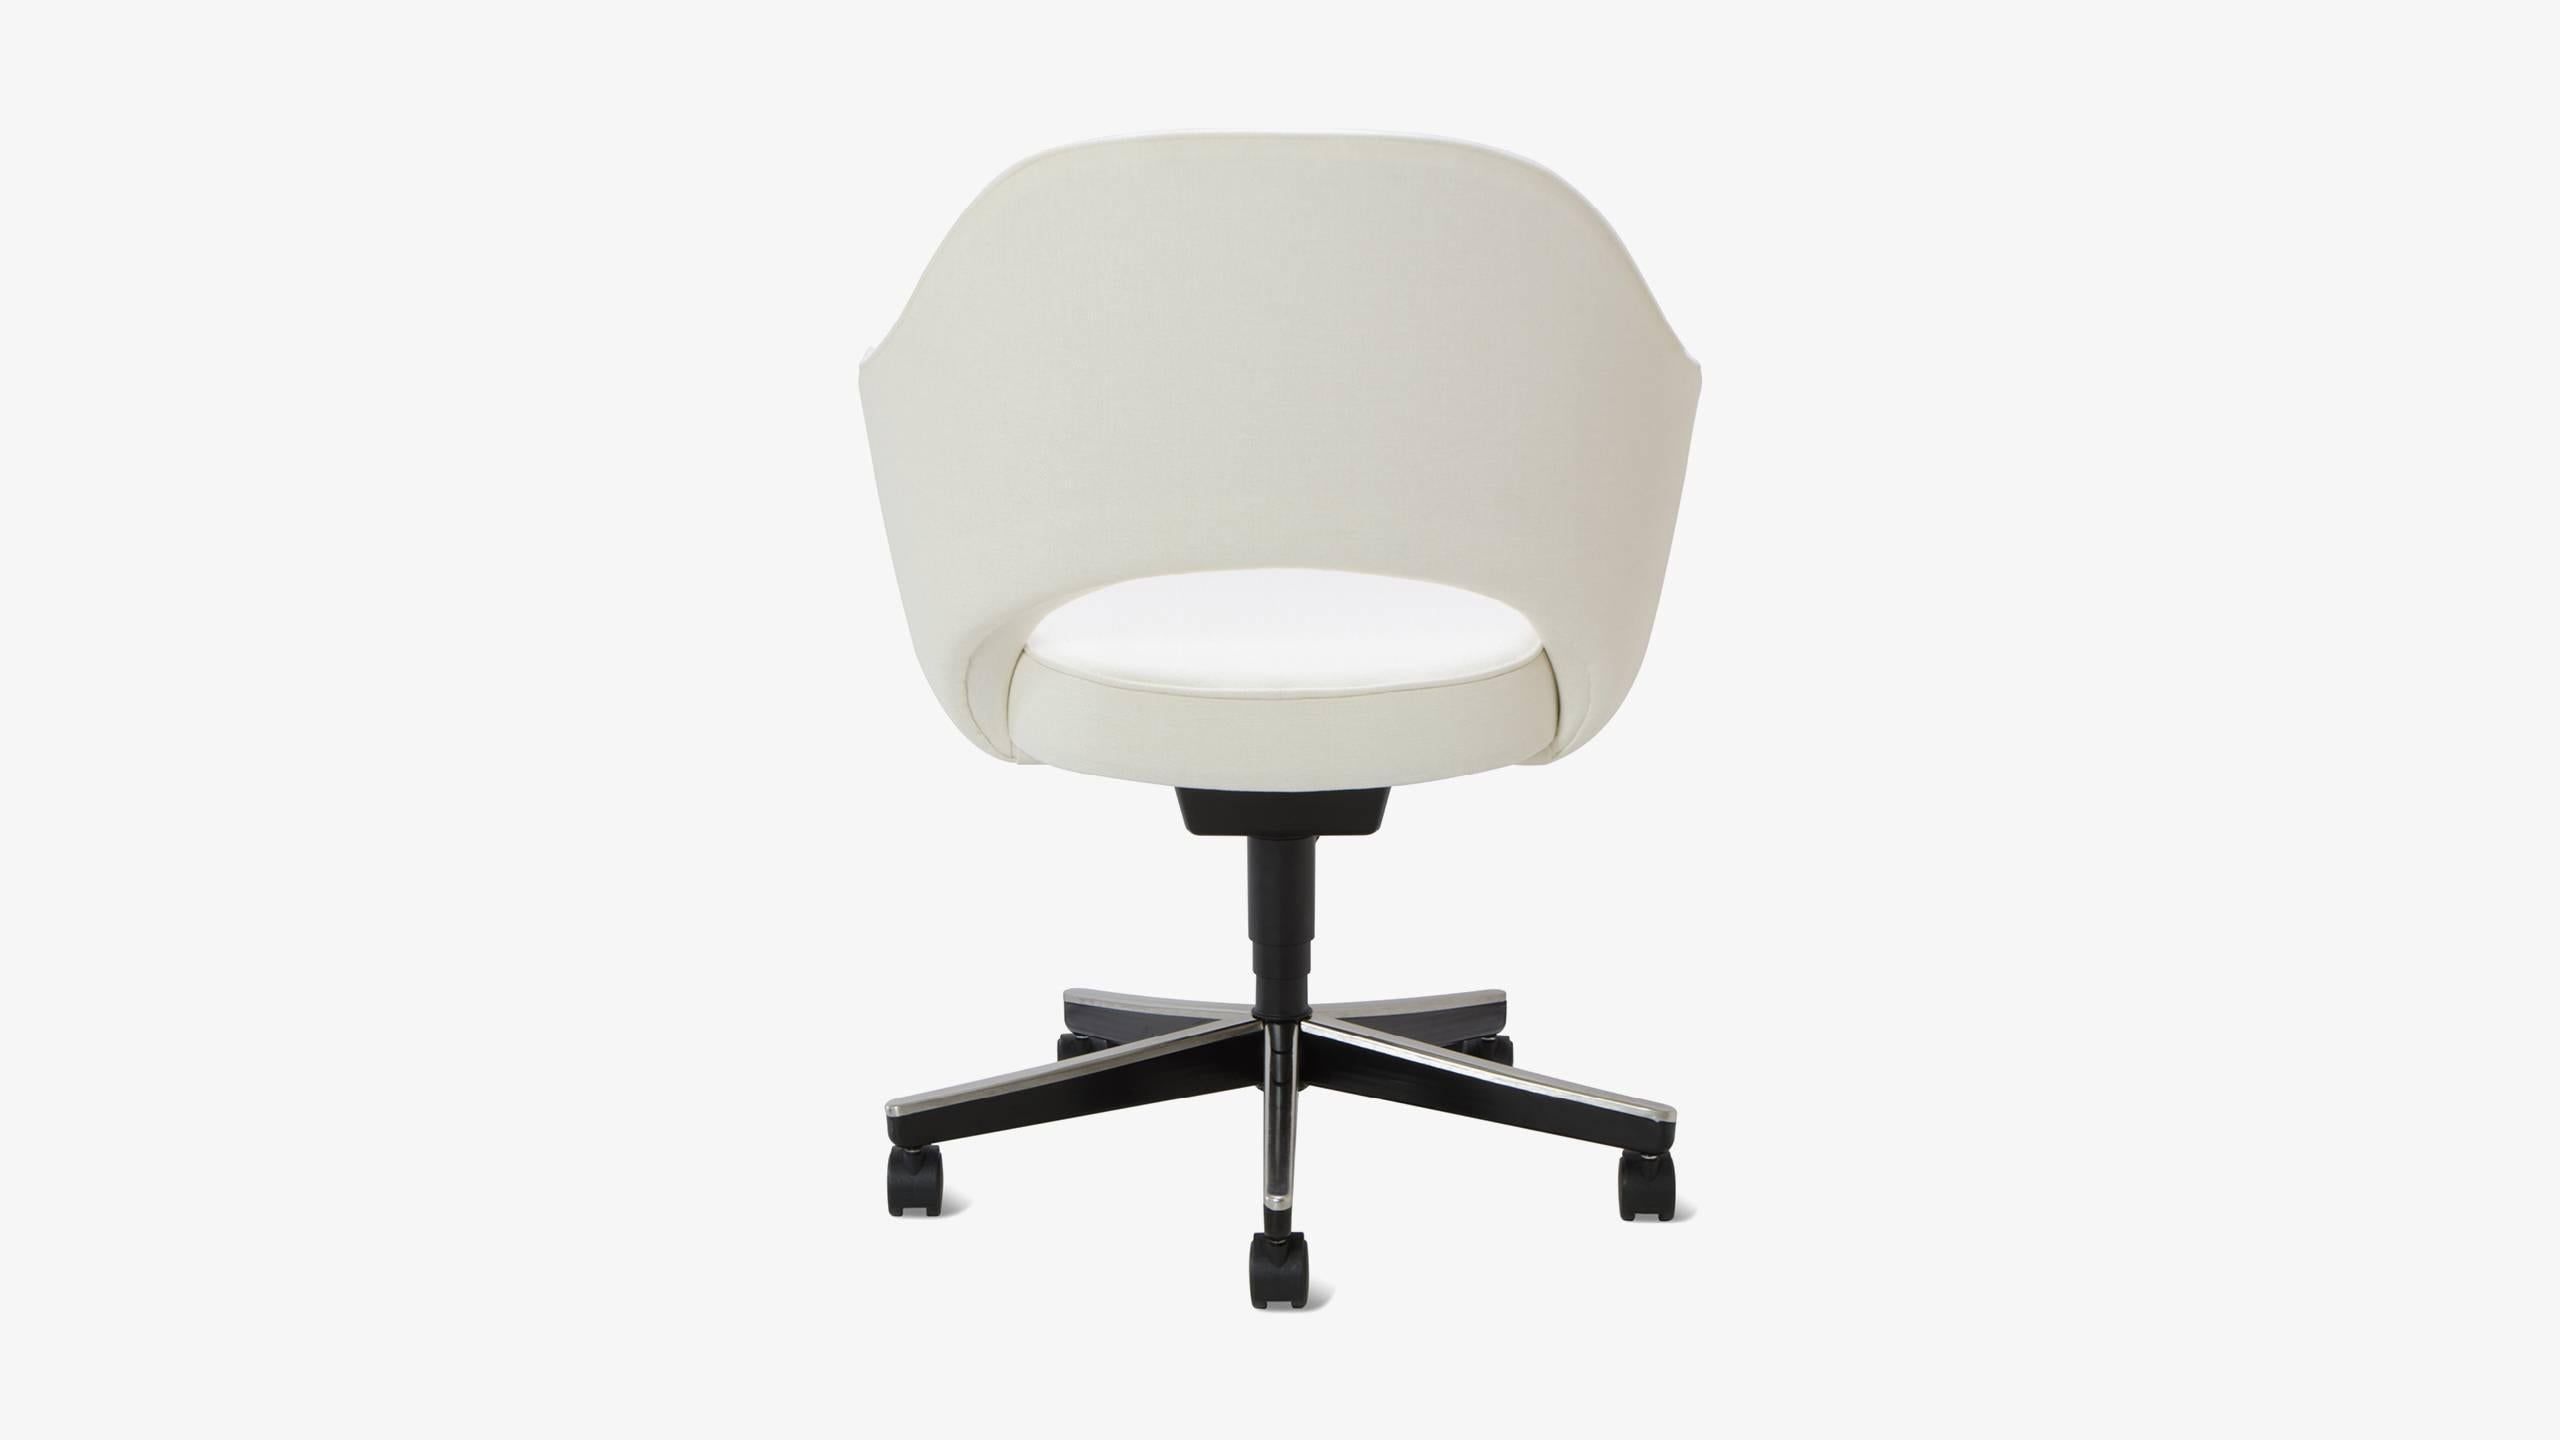 American Saarinen Executive Arm Chair In Ivory Basket Weave, Swivel Base  For Sale